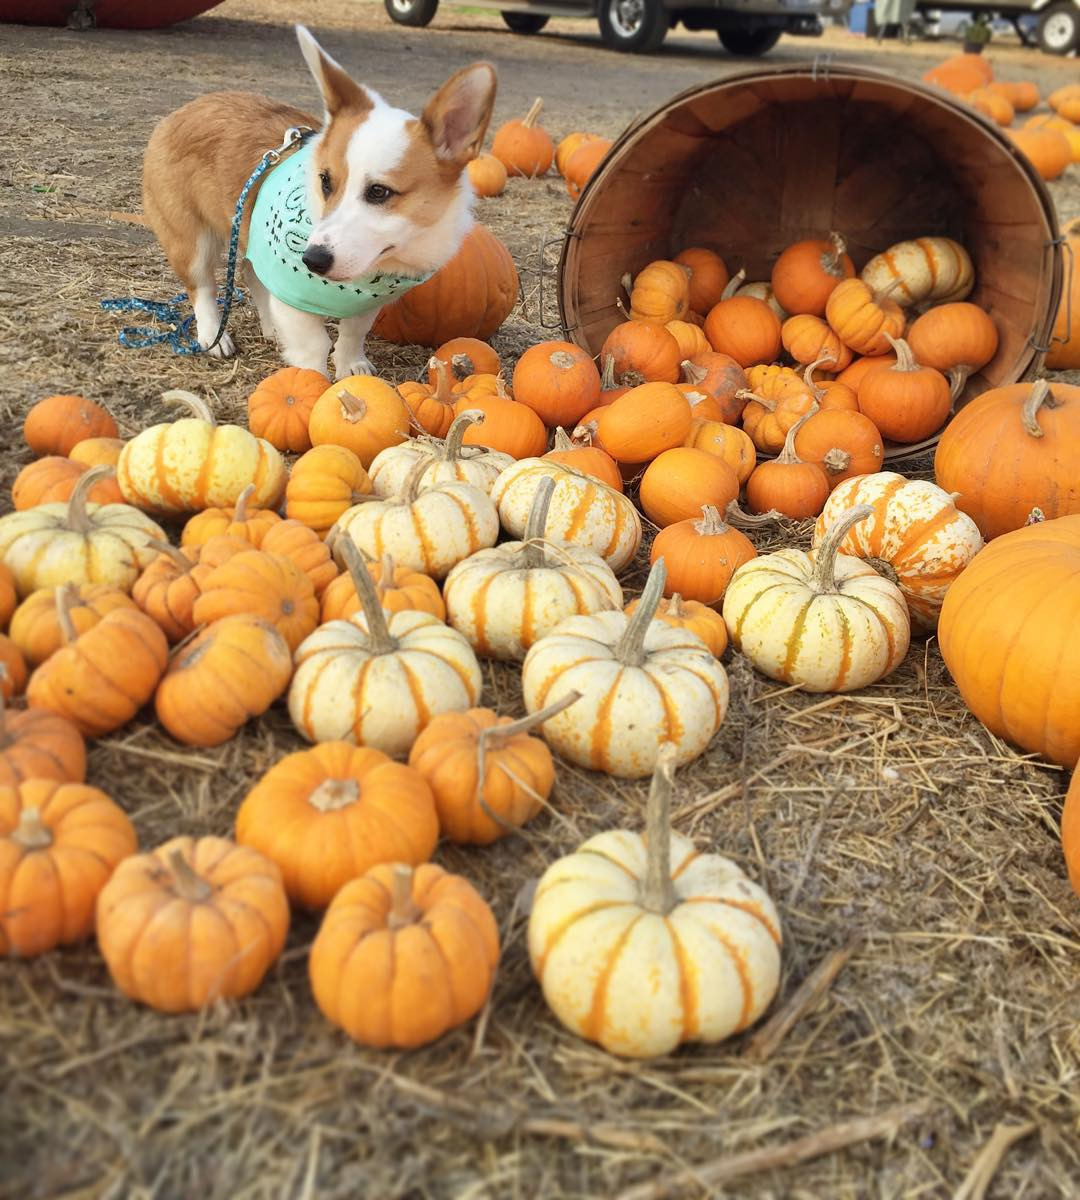 "<div class=""meta image-caption""><div class=""origin-logo origin-image none""><span>none</span></div><span class=""caption-text"">Here's a look at a corgi named Avicii enjoying a fine afternoon at a Bay Area pumpkin patch. Share your photos by tagging them on Instagram, Twitter, or Facebook with #SpookyOn7! (Photo submitted to KGO-TV by @aviciithecorgi/Instagram)</span></div>"